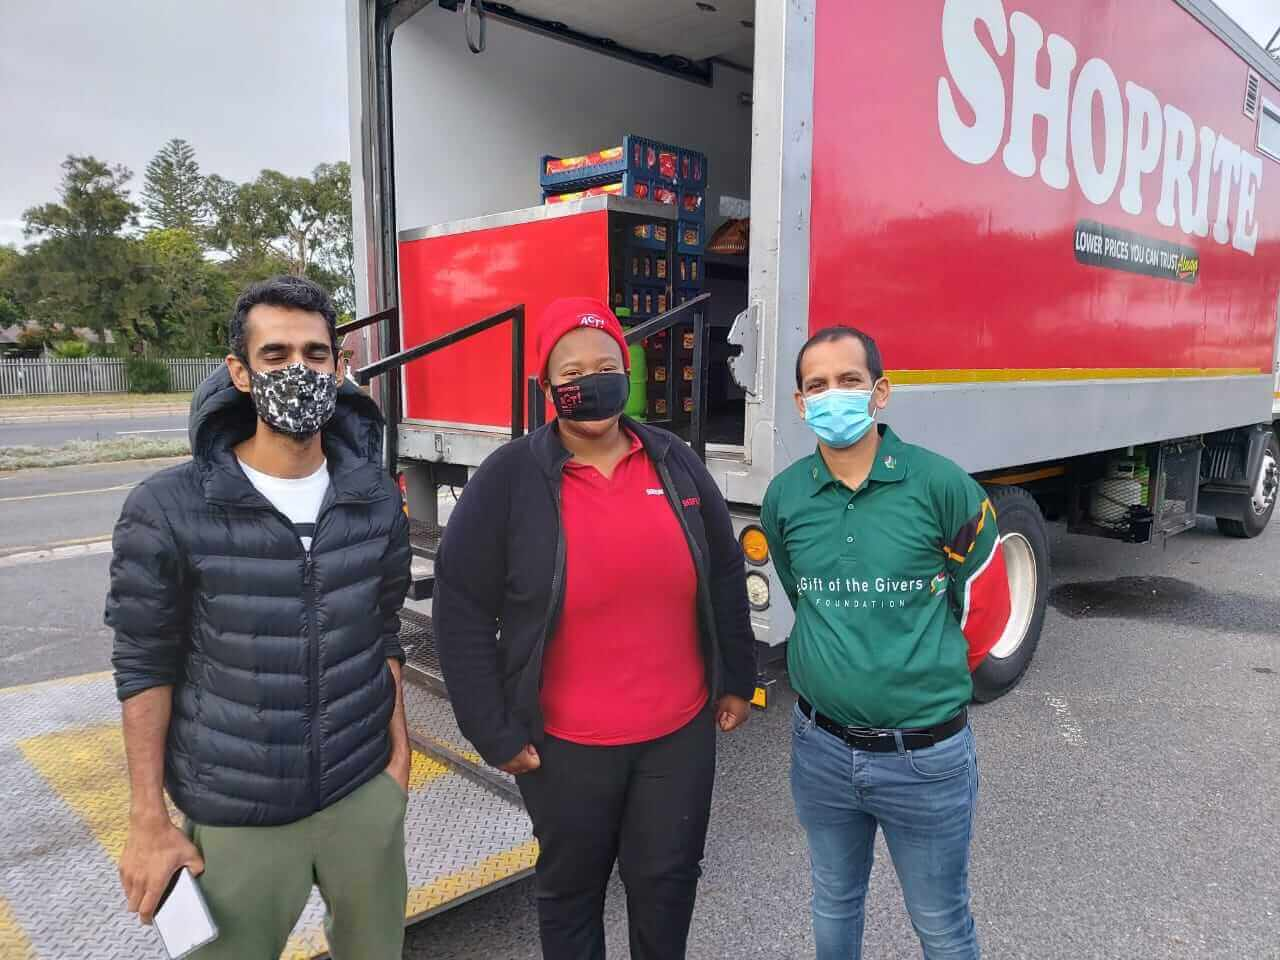 The Shoprite Mobile Soup Kitchen ready to serve UCT students housed at Mupine College in Pinelands